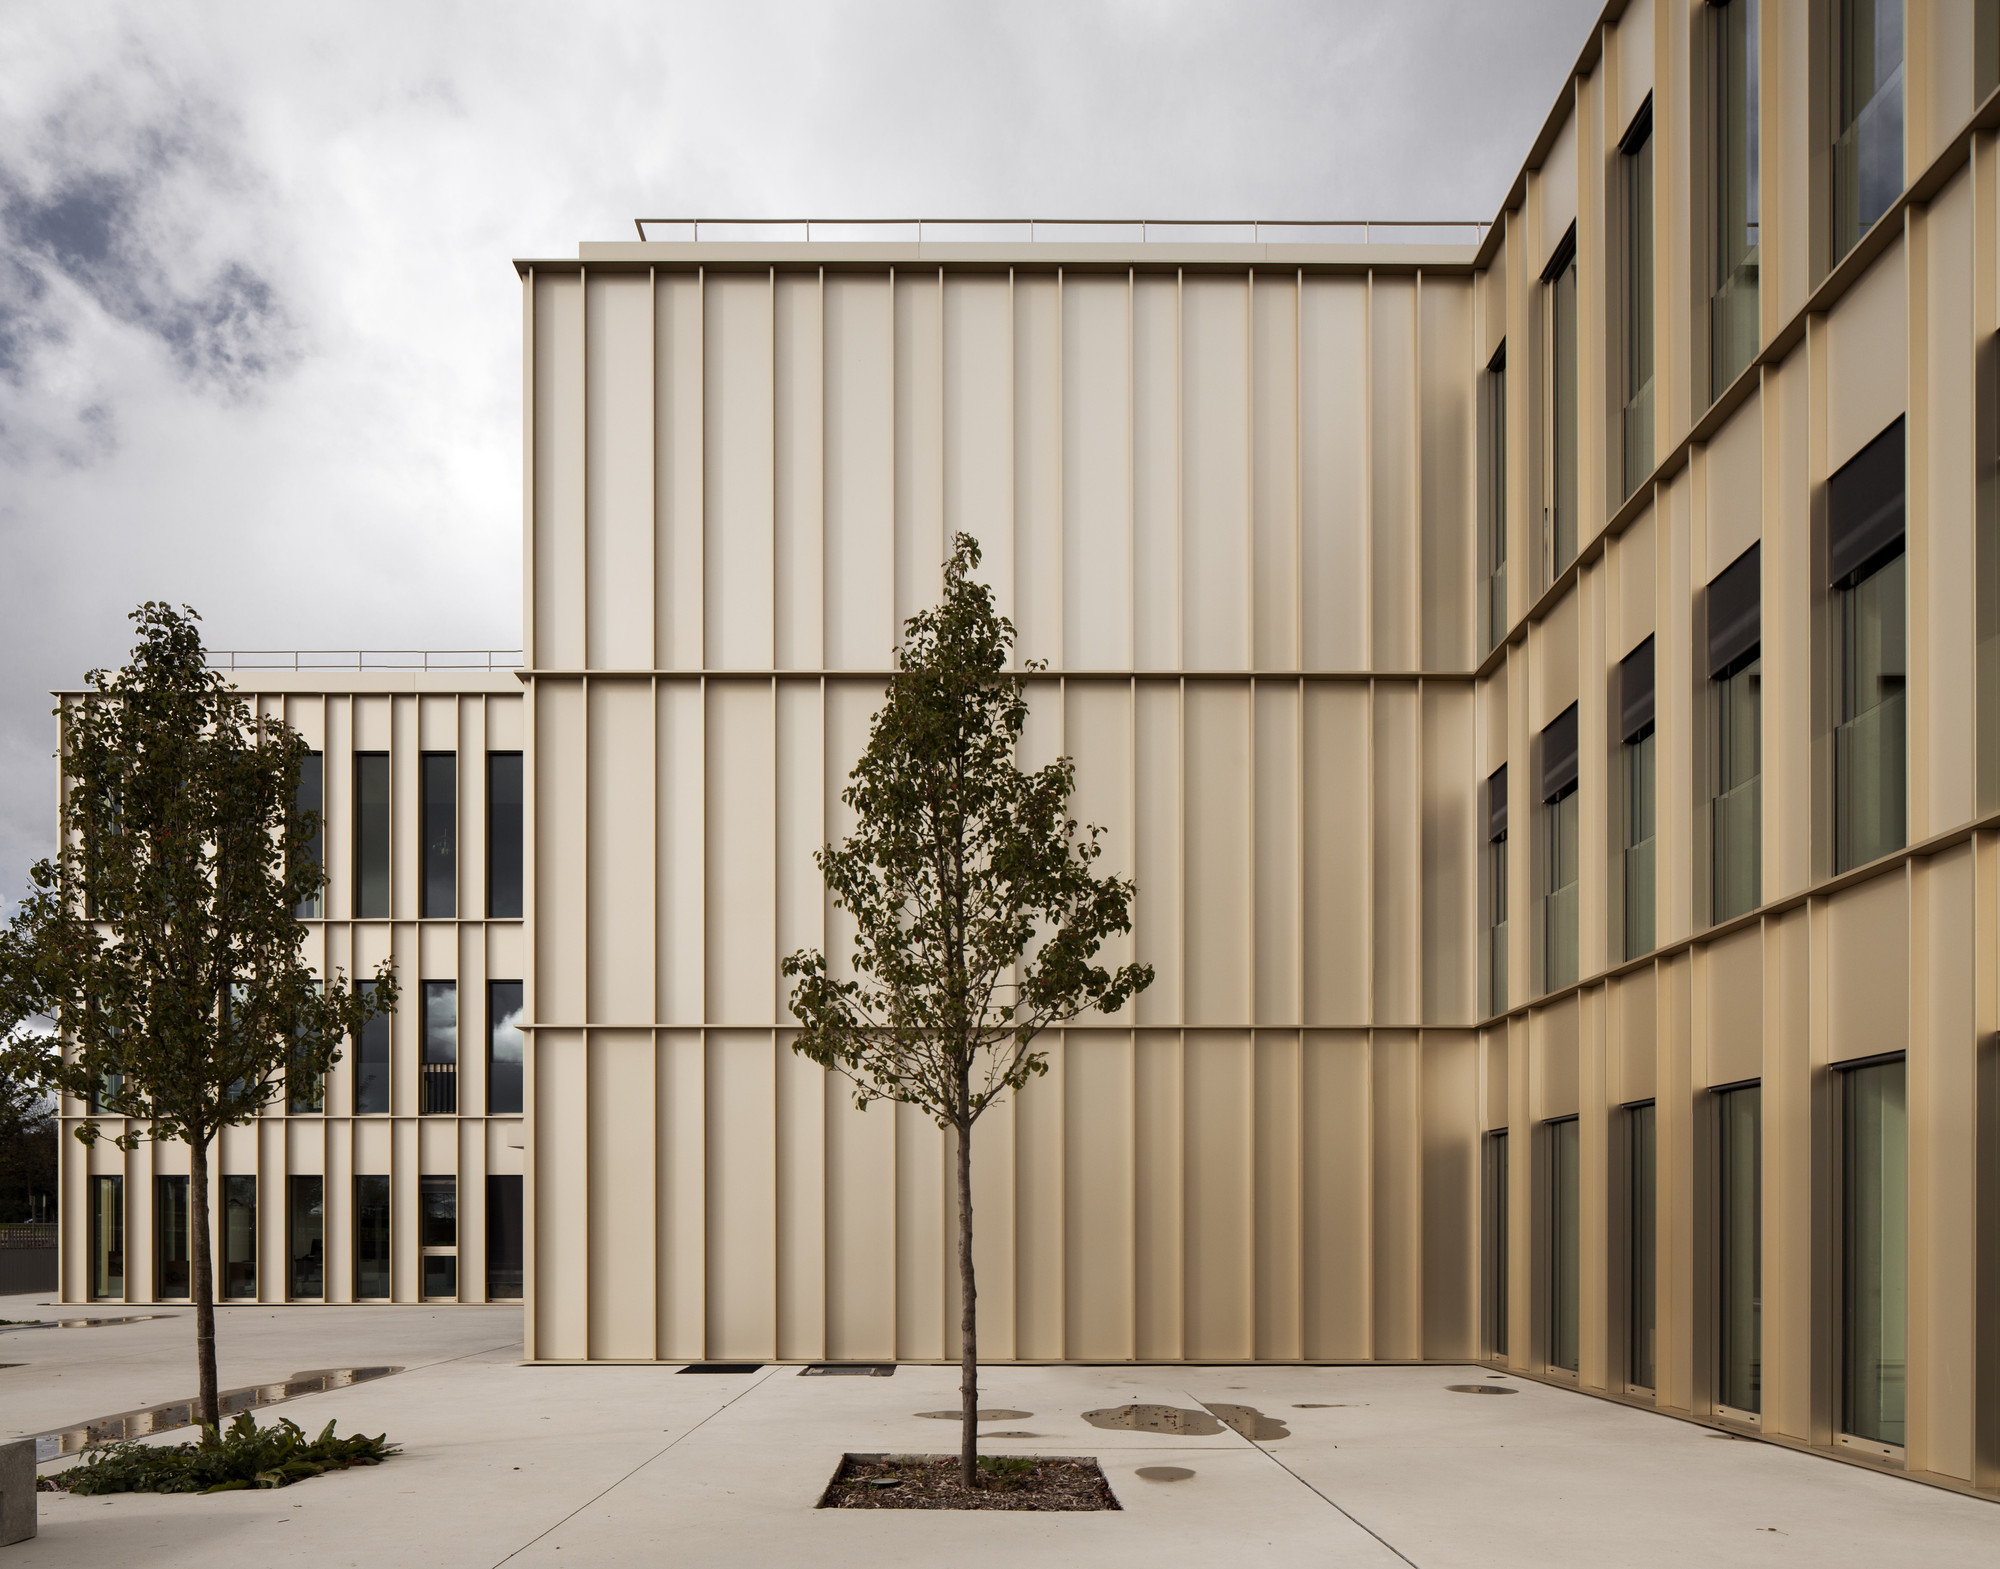 MBA Building, Ecole des Hautes Etudes Commerciales, Paris, France by David Chipperfield Architects © Simon Menges